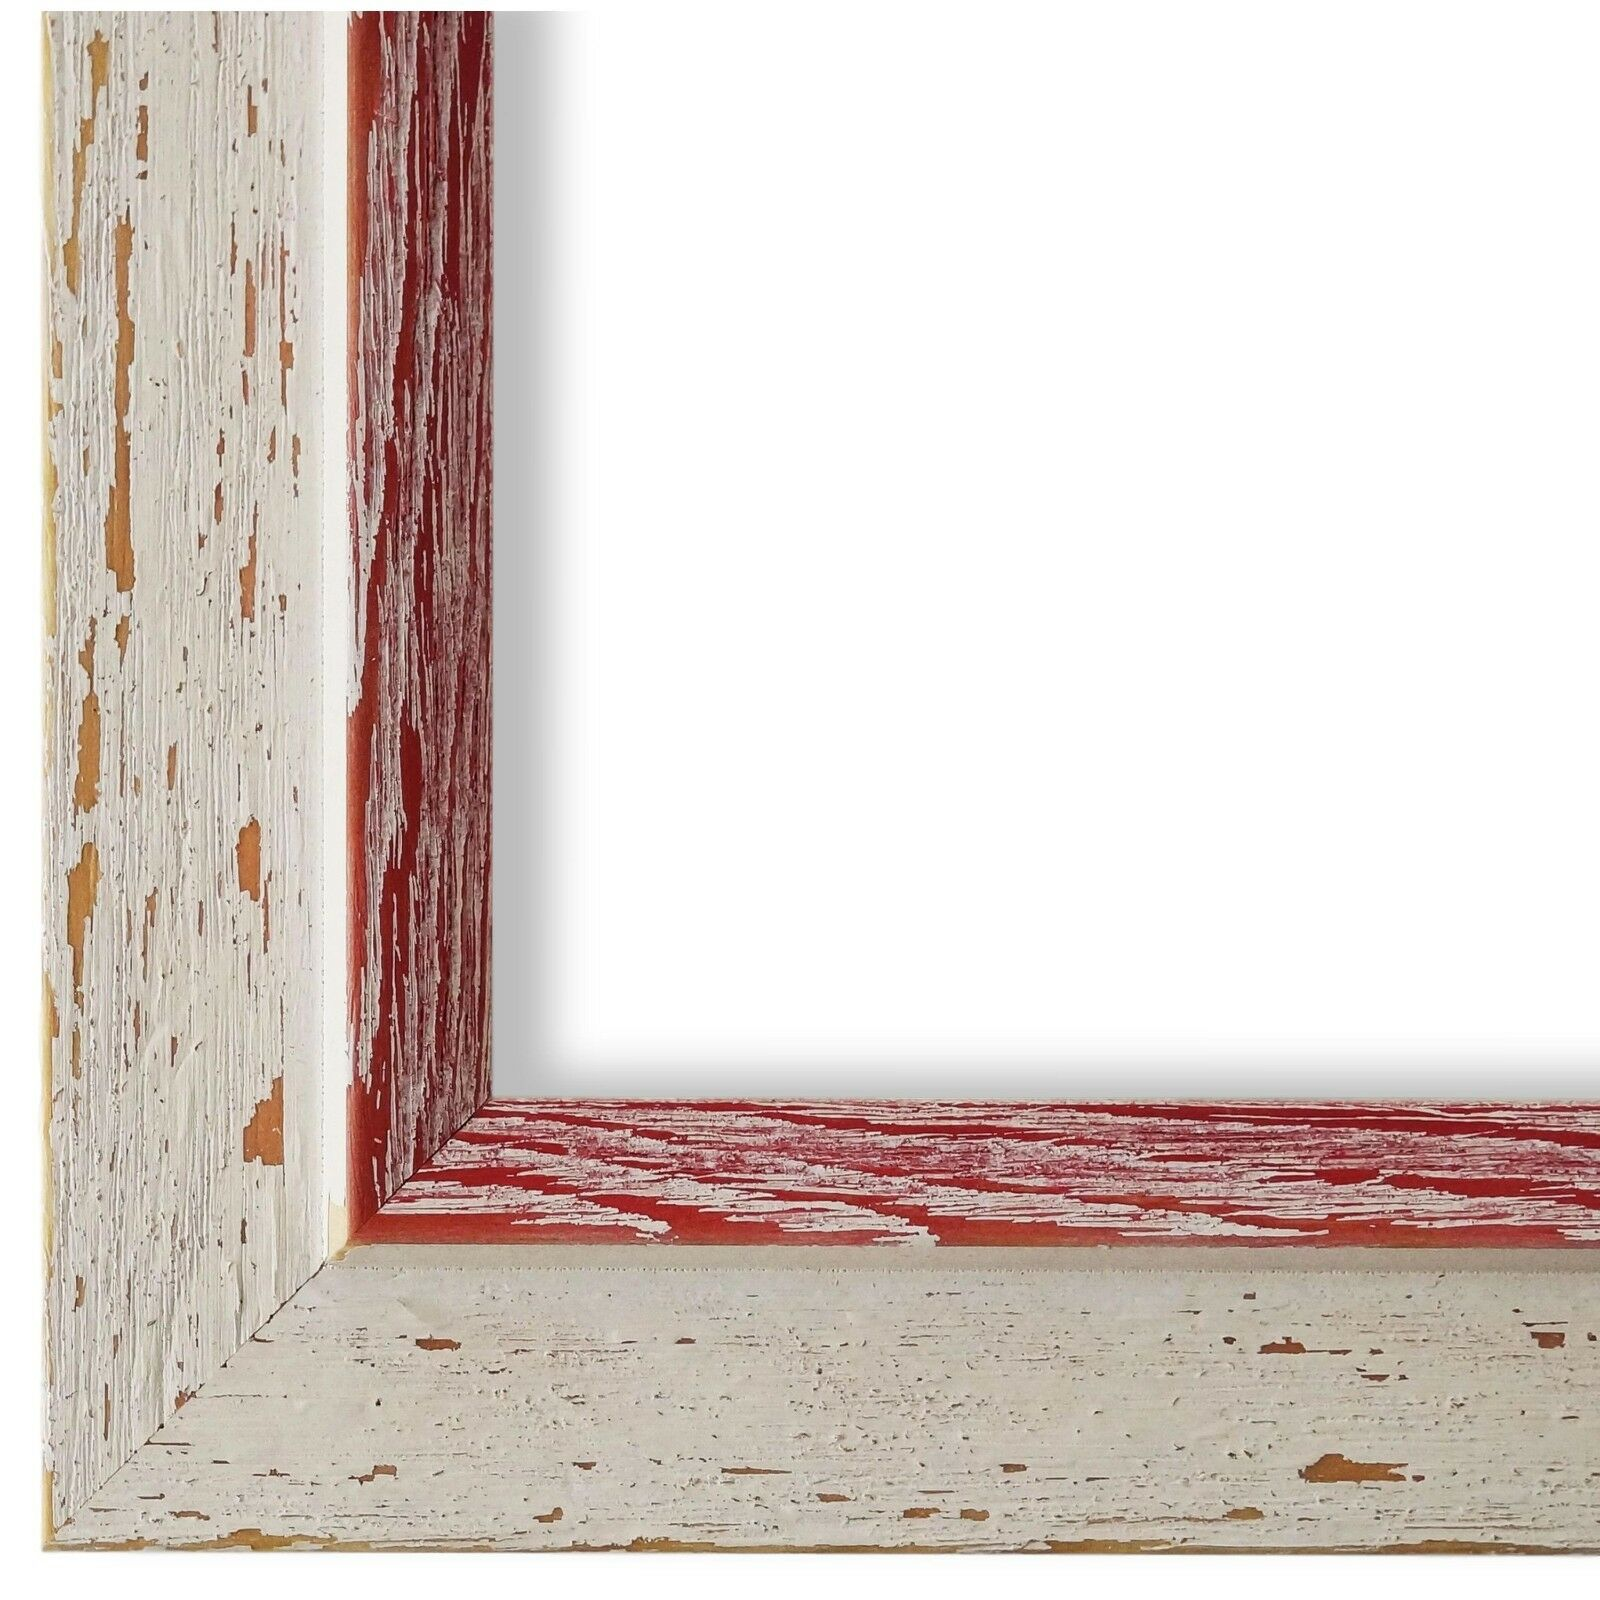 Bilderrahmen 40x40 Home Decor Bilderrahmen Rot Gold Catanzaro 3,9-24x30 28x35 30x30 30x40 30x45 40x40 40x50 Home, Furniture & Diy Cruzeirista.com.br